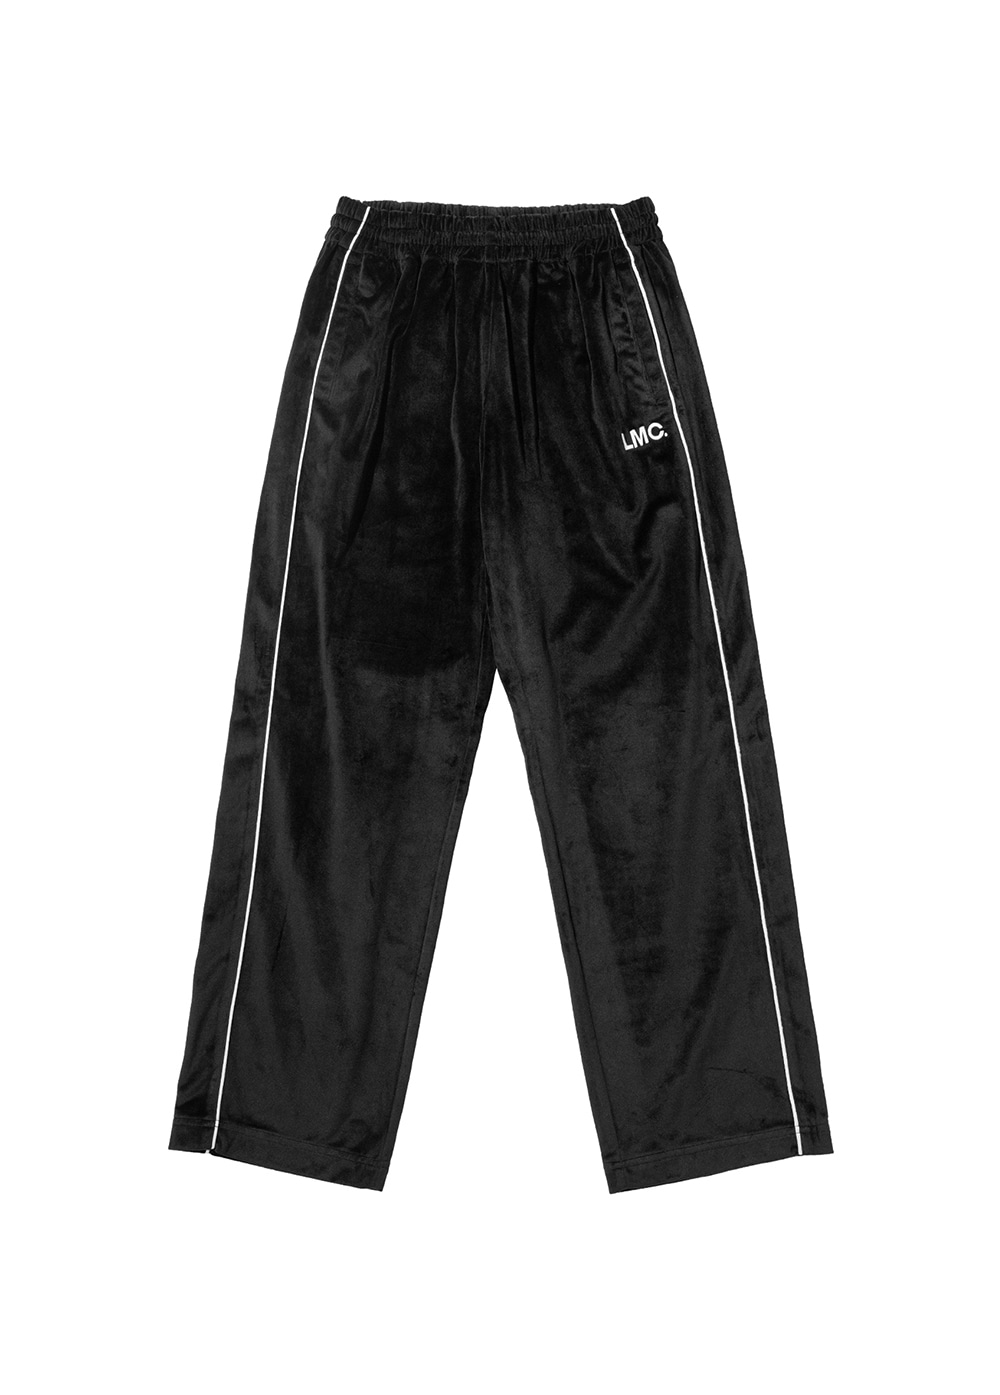 LMC VELOUR TRACK PANTS black